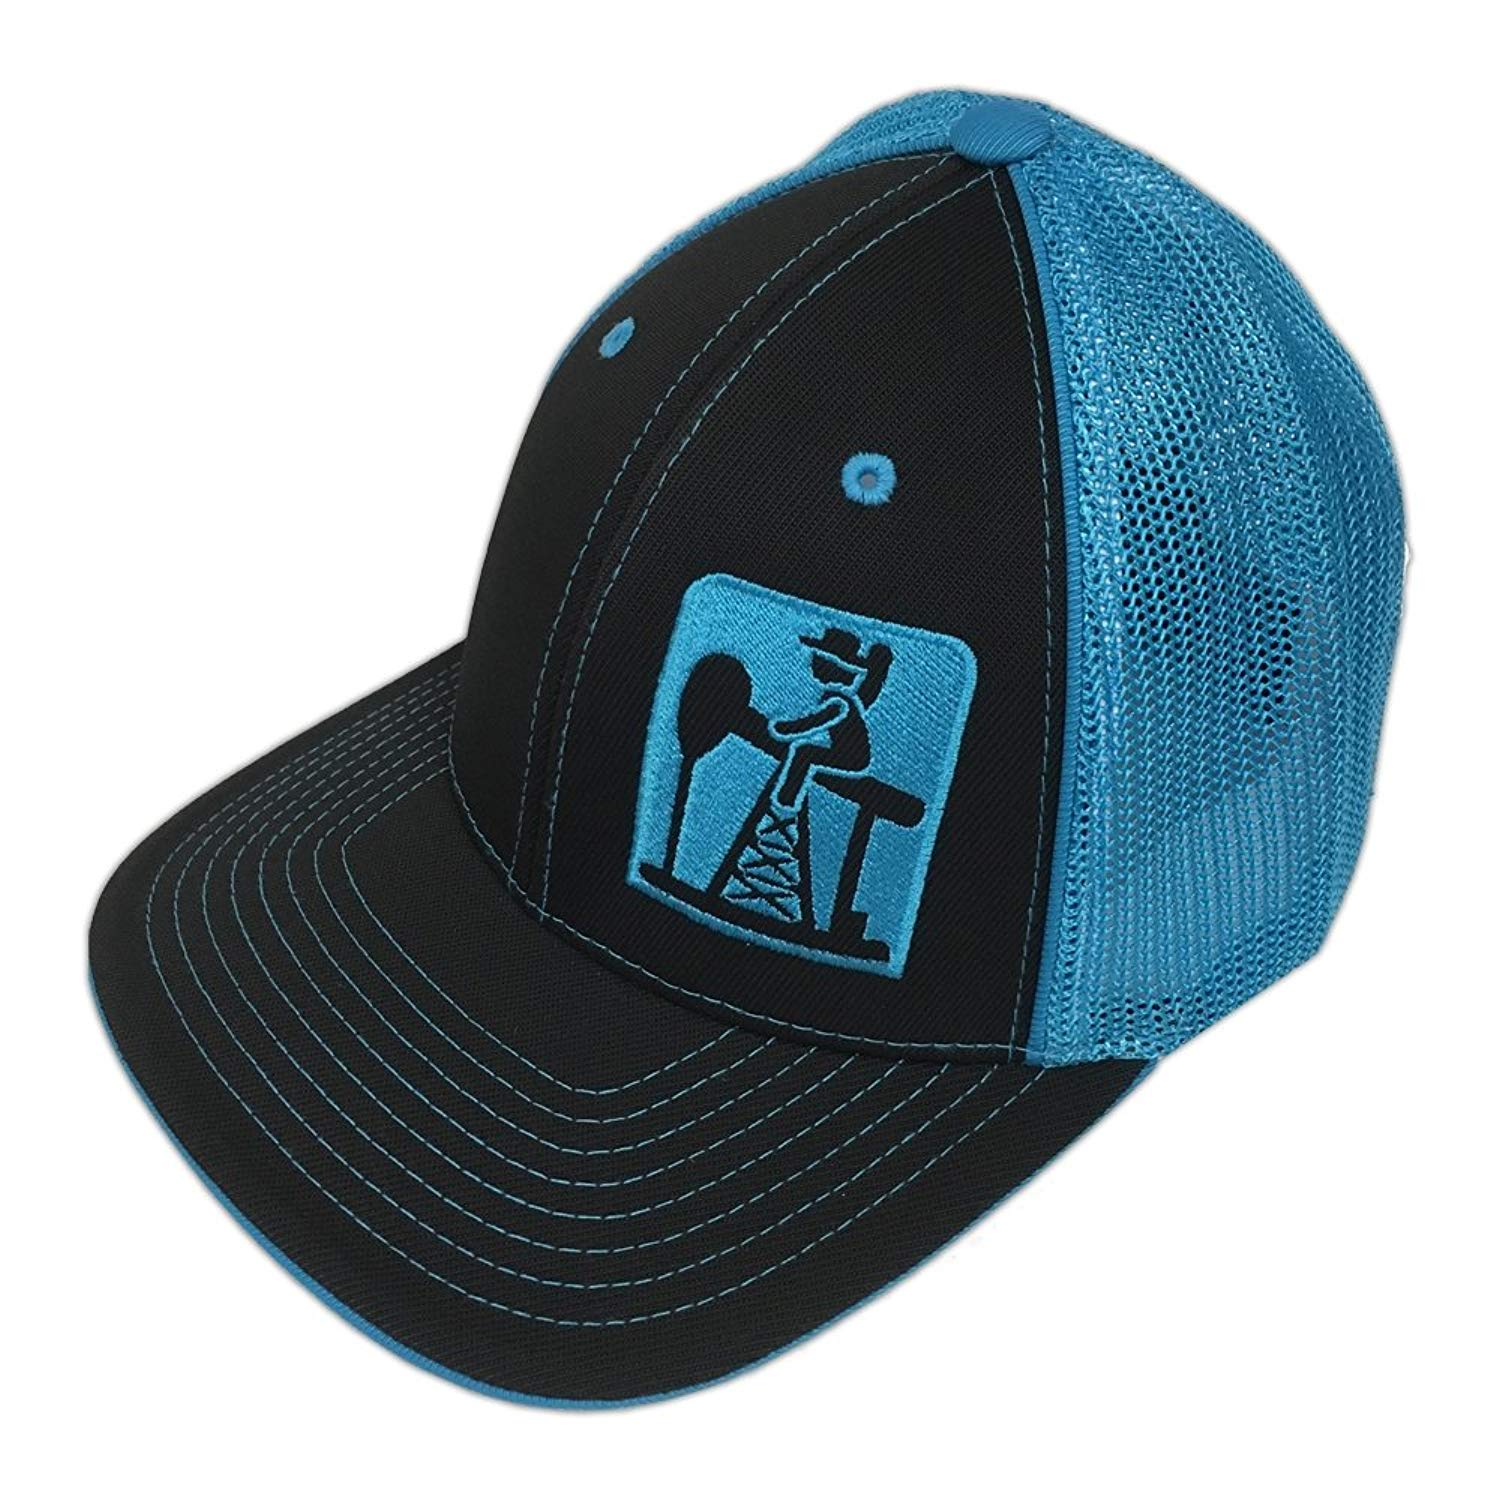 ebd0f942fdacd good fox racing elmondier hat 90e50 d69f7  cheap get quotations pump jack  cowboy brand black neon blue reverse out pumpjack logo flexfit hat